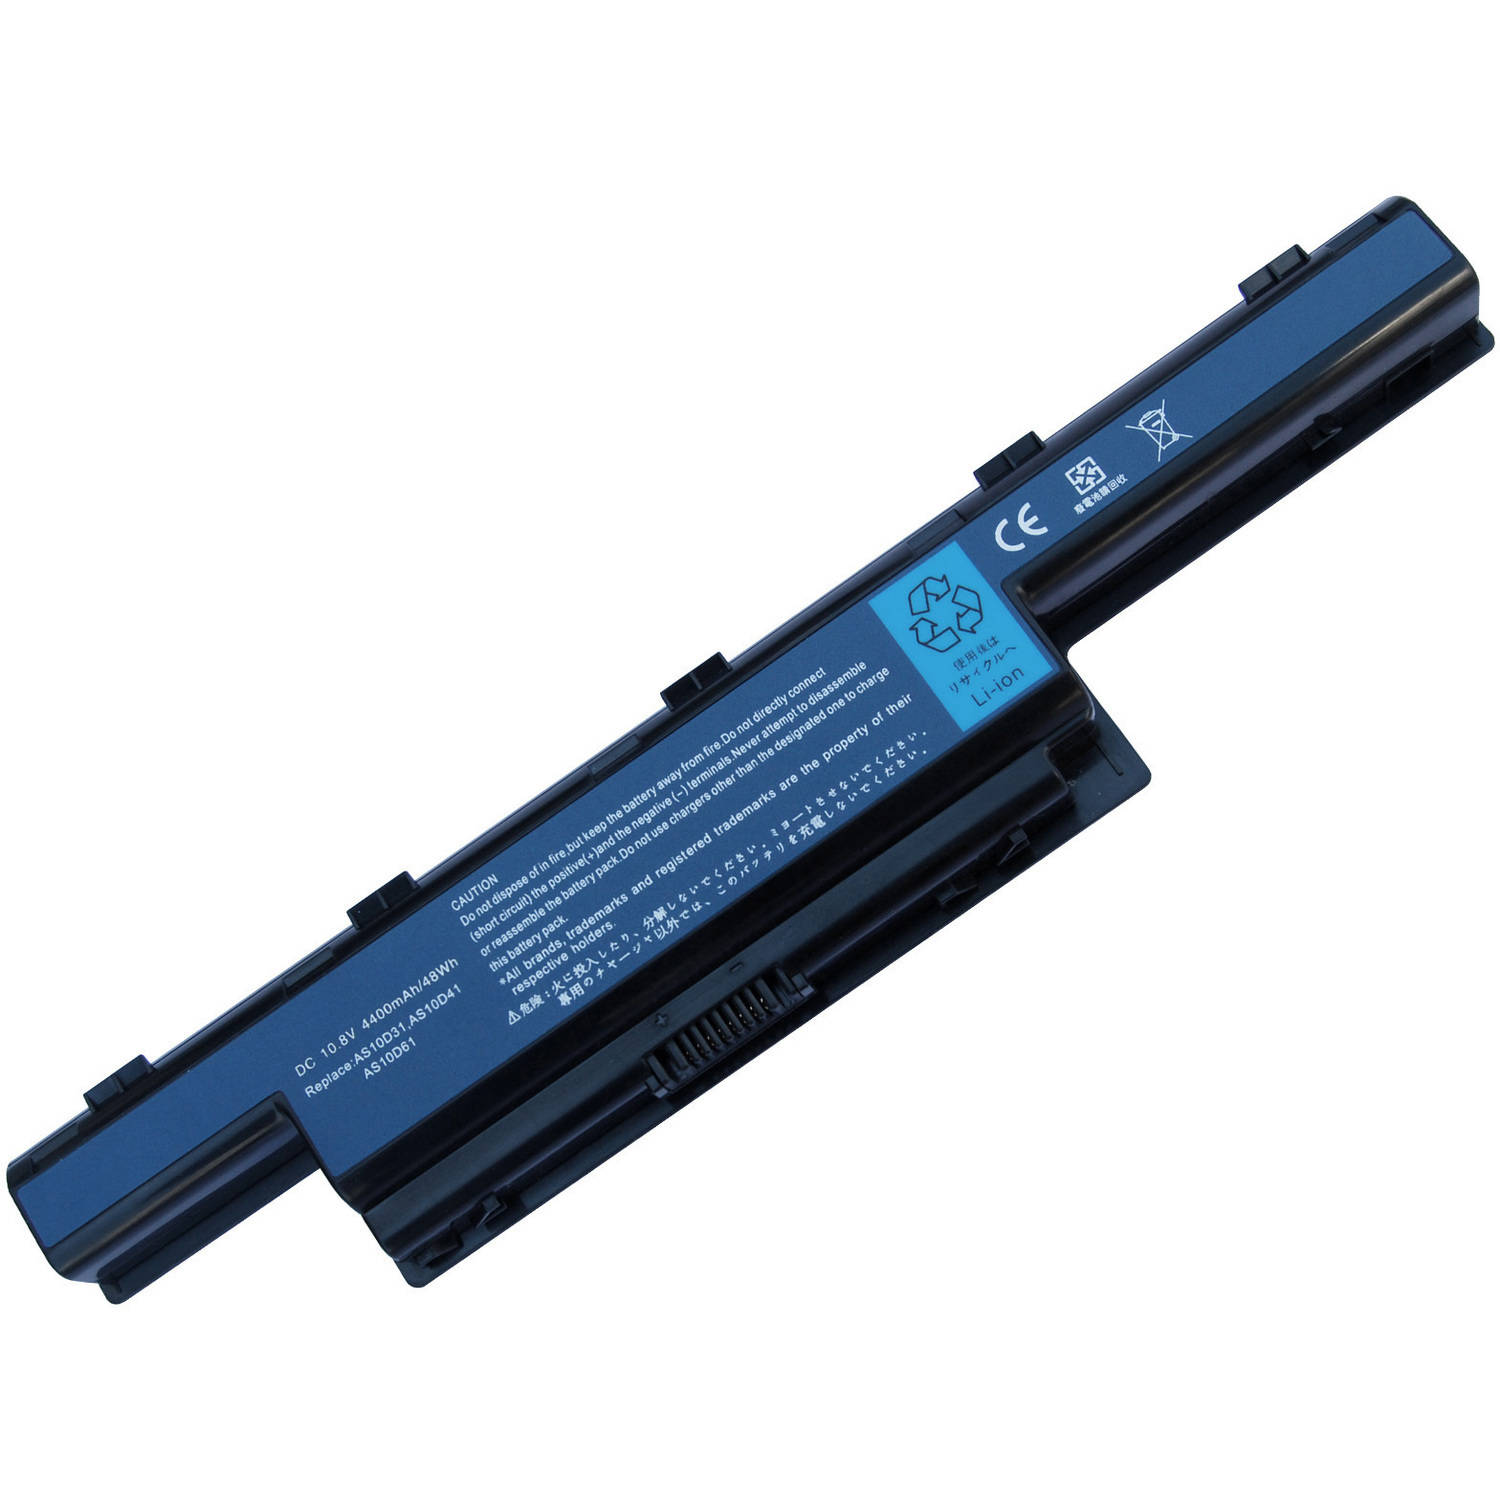 Acer Aspire 4741 Laptop Battery Replacement